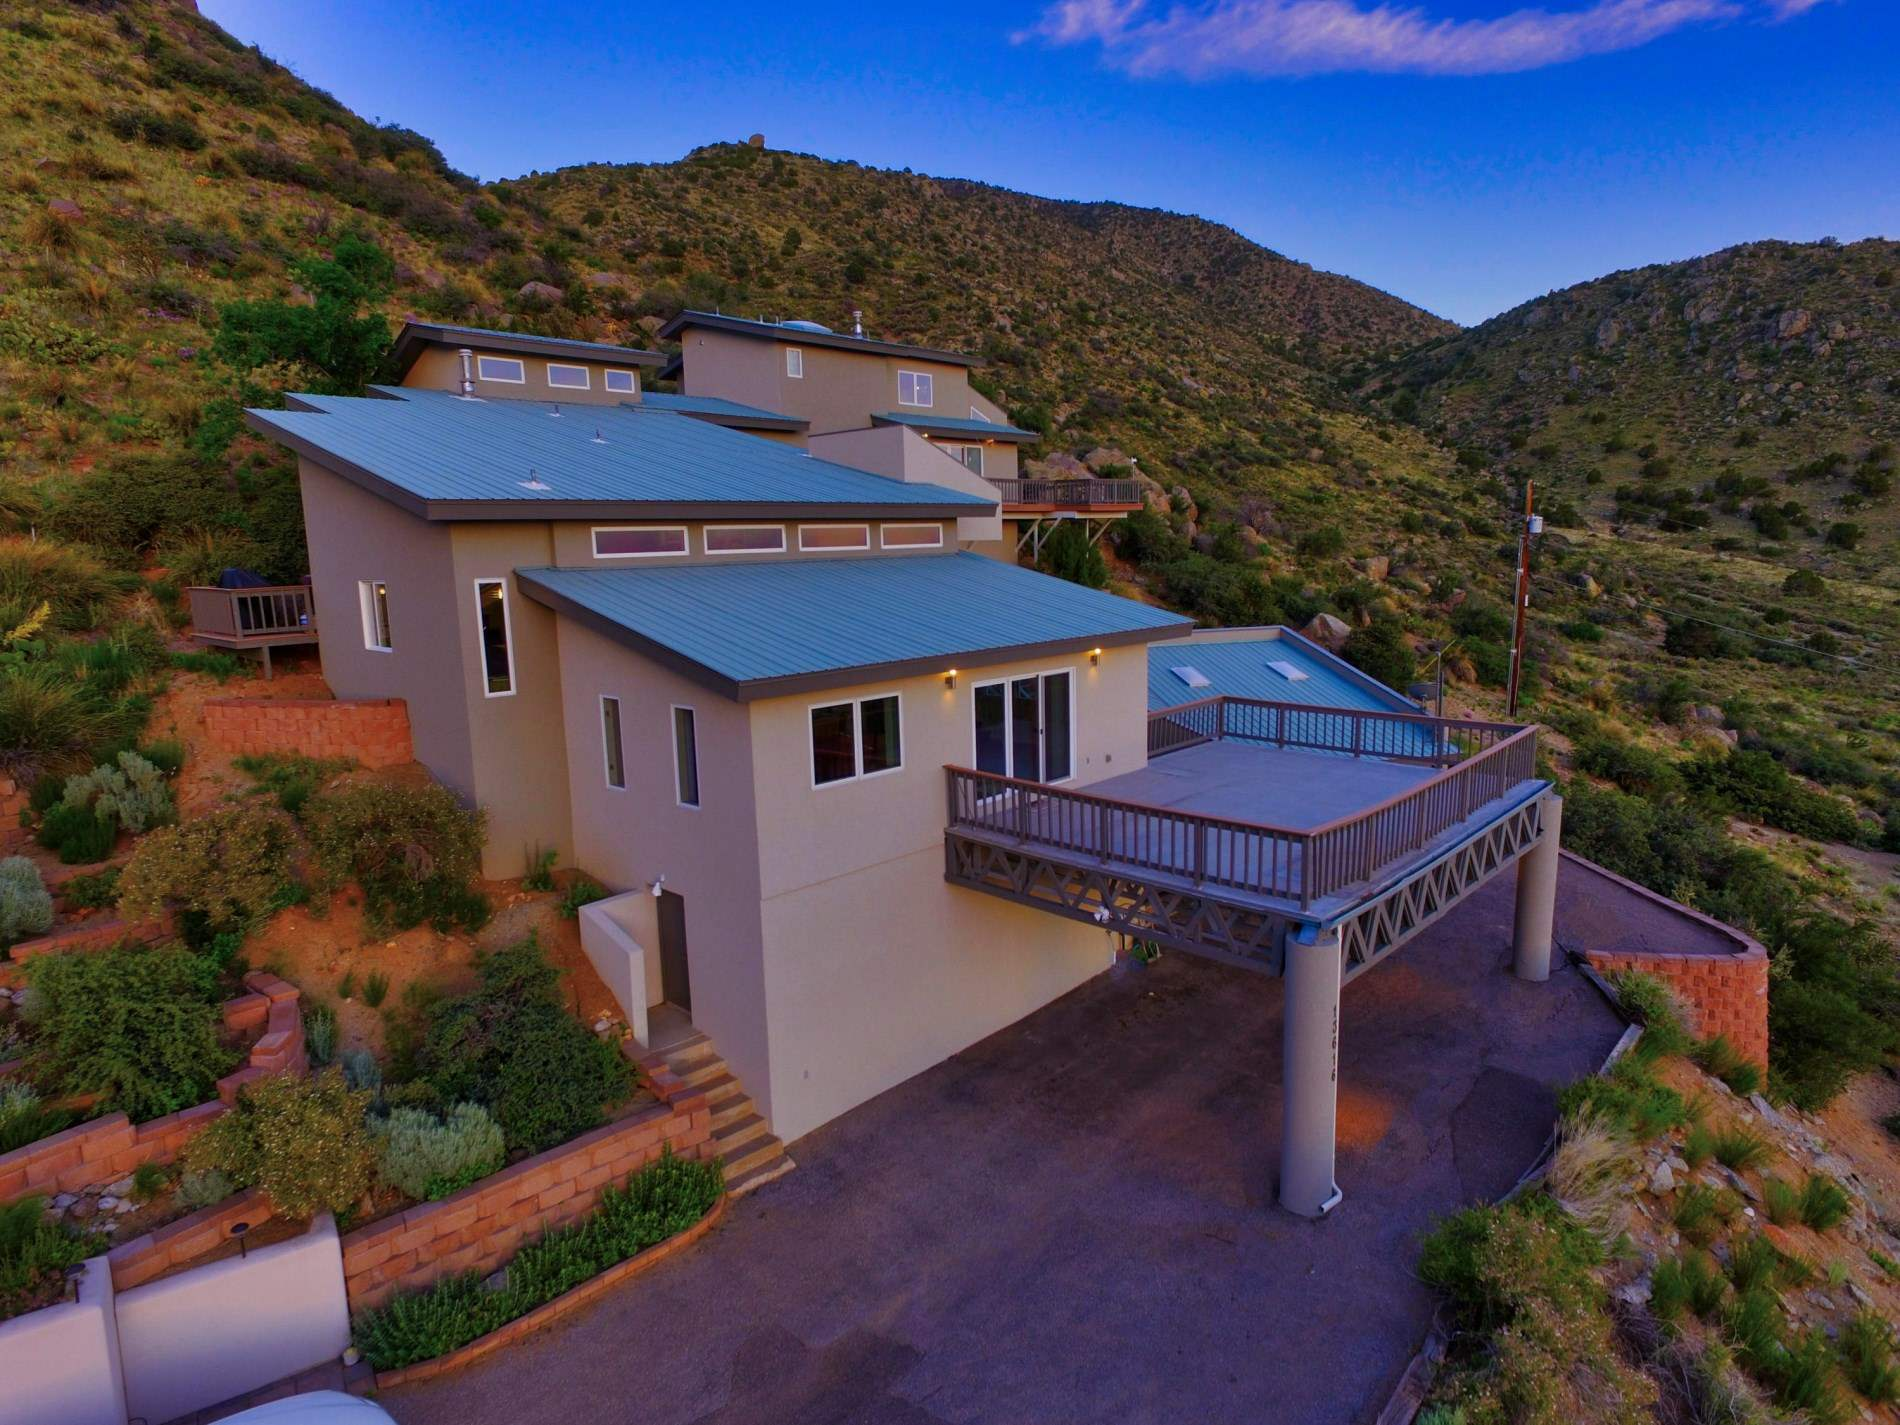 Contemporary living, modern elegance, & tranquility await you high up on the hill! An artistic and open floorplan. Offering unobstructed views as far as the eye can see to the west & open space to the east & south. This unique custom split level home is a certified wildlife habitat and frequently enjoys visits from a wide variety of wildlife. It has 5 levels integrated into the contour of the mountain. The complete remodel brings modern color and flair to this amazing dream home! Designed by a local architect to be his own personal domicile, great care was taken to capture the best views & take maximum advantage of the solar gains. There are 4 separate decks surrounding the home to maximize outdoor living space.    The open floor plan makes this home ideal for entertaining. There are 2 REFRIGERATED AIR units! The master bedroom is located on the upper level and is separate from the other bedrooms. The master bath boasts teakwood sinks and tub. Grab your favorite drink and your cuddle buddy and enjoy the private patio space! The views are unbeatable! Cheers!